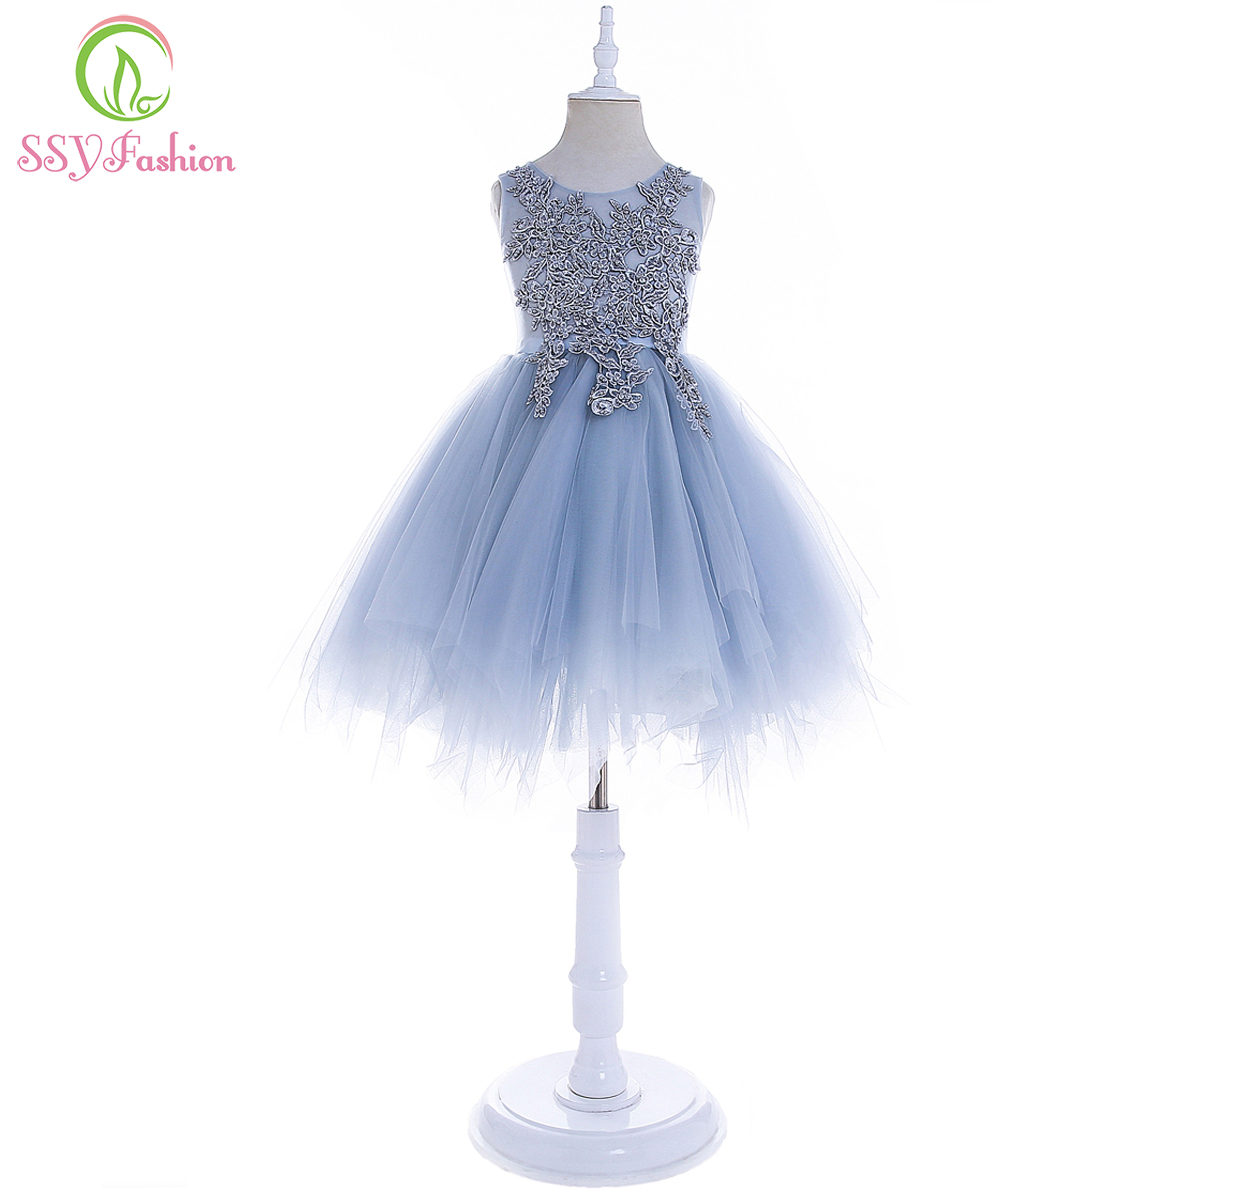 SSYFashion New   Flower     Girl     Dresses   for Wedding Party Sleeveless Lace Appliques with Beading Short Children Princess Formal   Dress